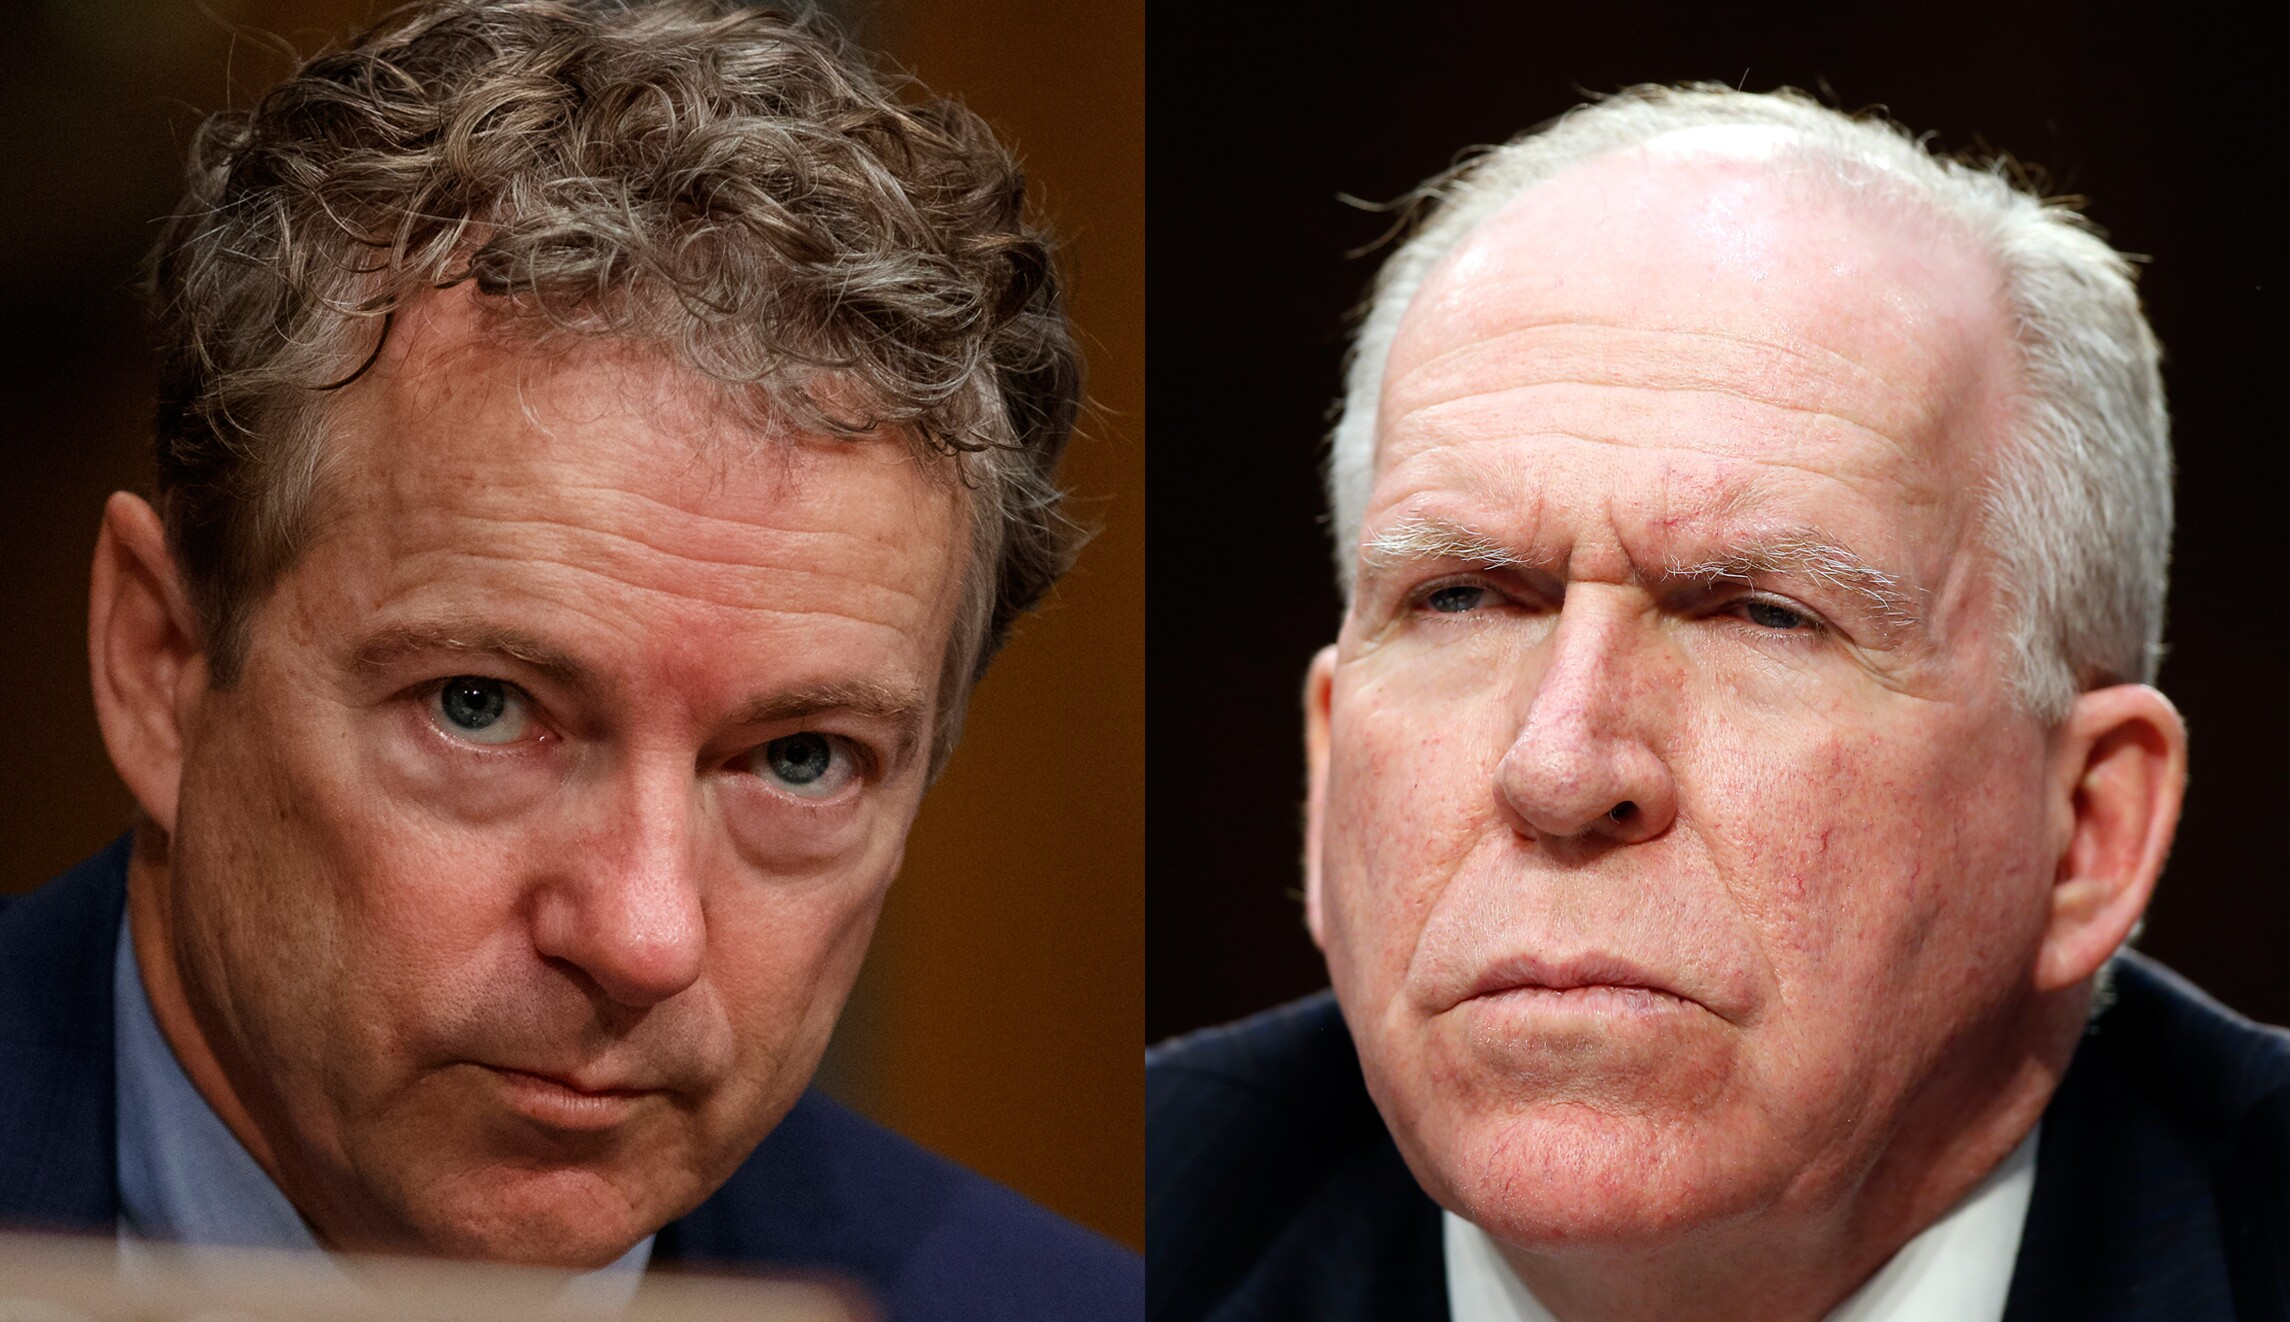 Rand Paul: 'Insiders' say John Brennan lost 'need to know' clearance and access to classified info